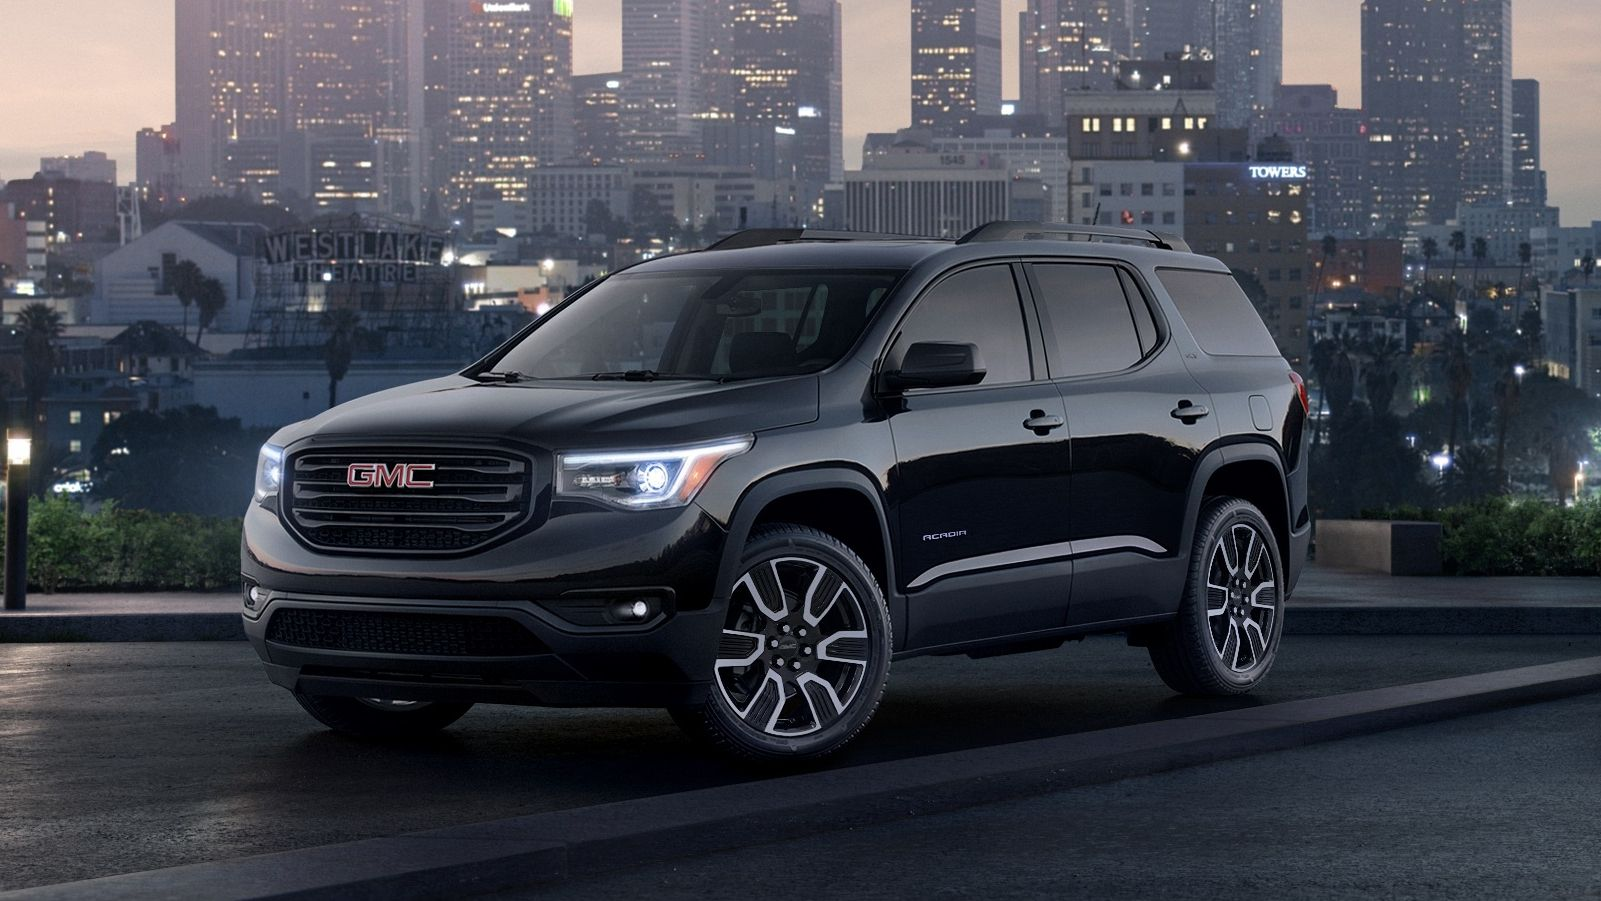 2019 Gmc Acadia Black Edition Top Speed Gmc Terrain Gmc Acadia Denali